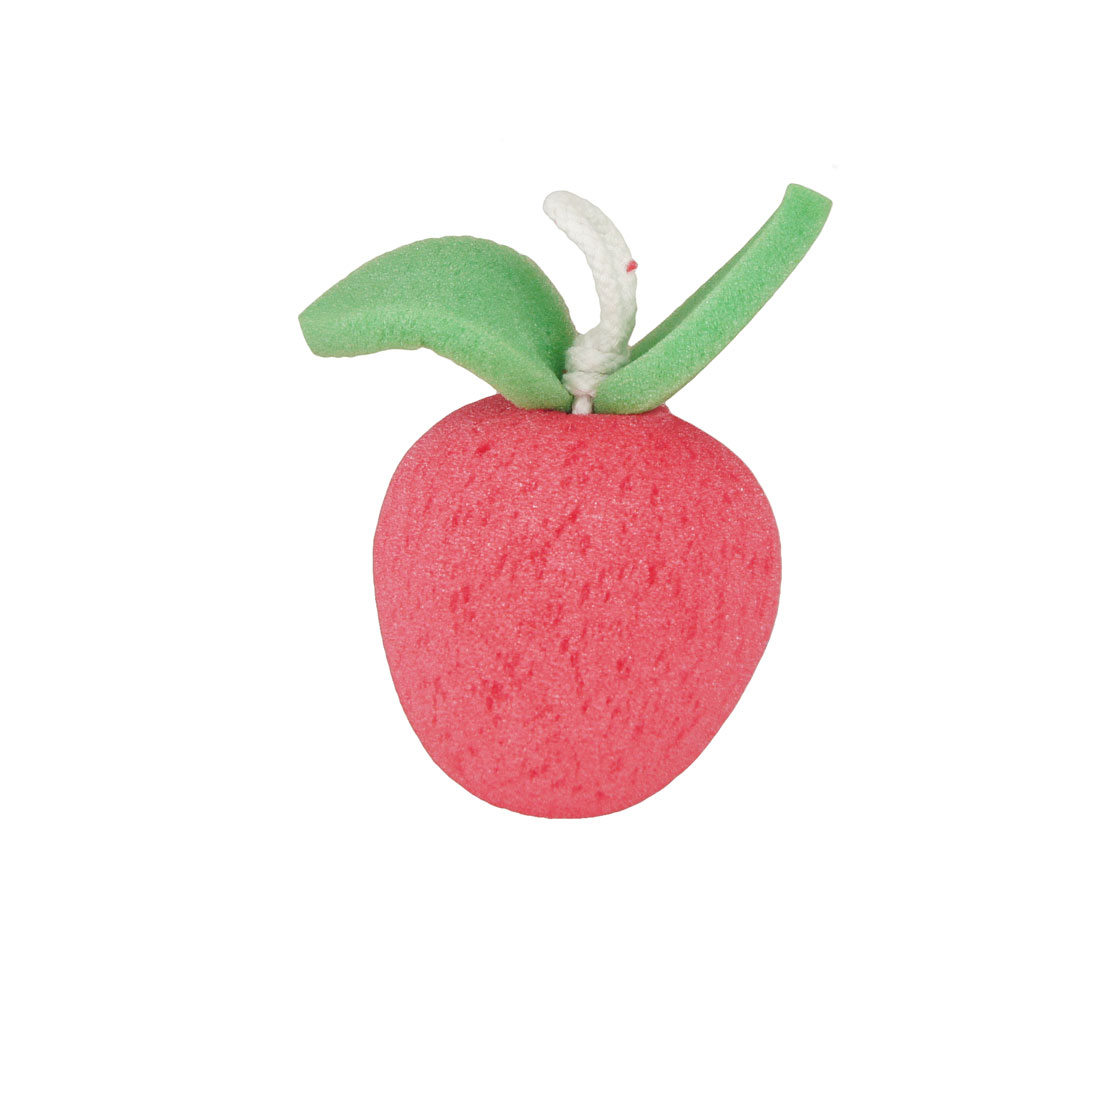 Red Apple Fruit Green Leaves Accent Body Massage Wash Cleaning Shower Sponge